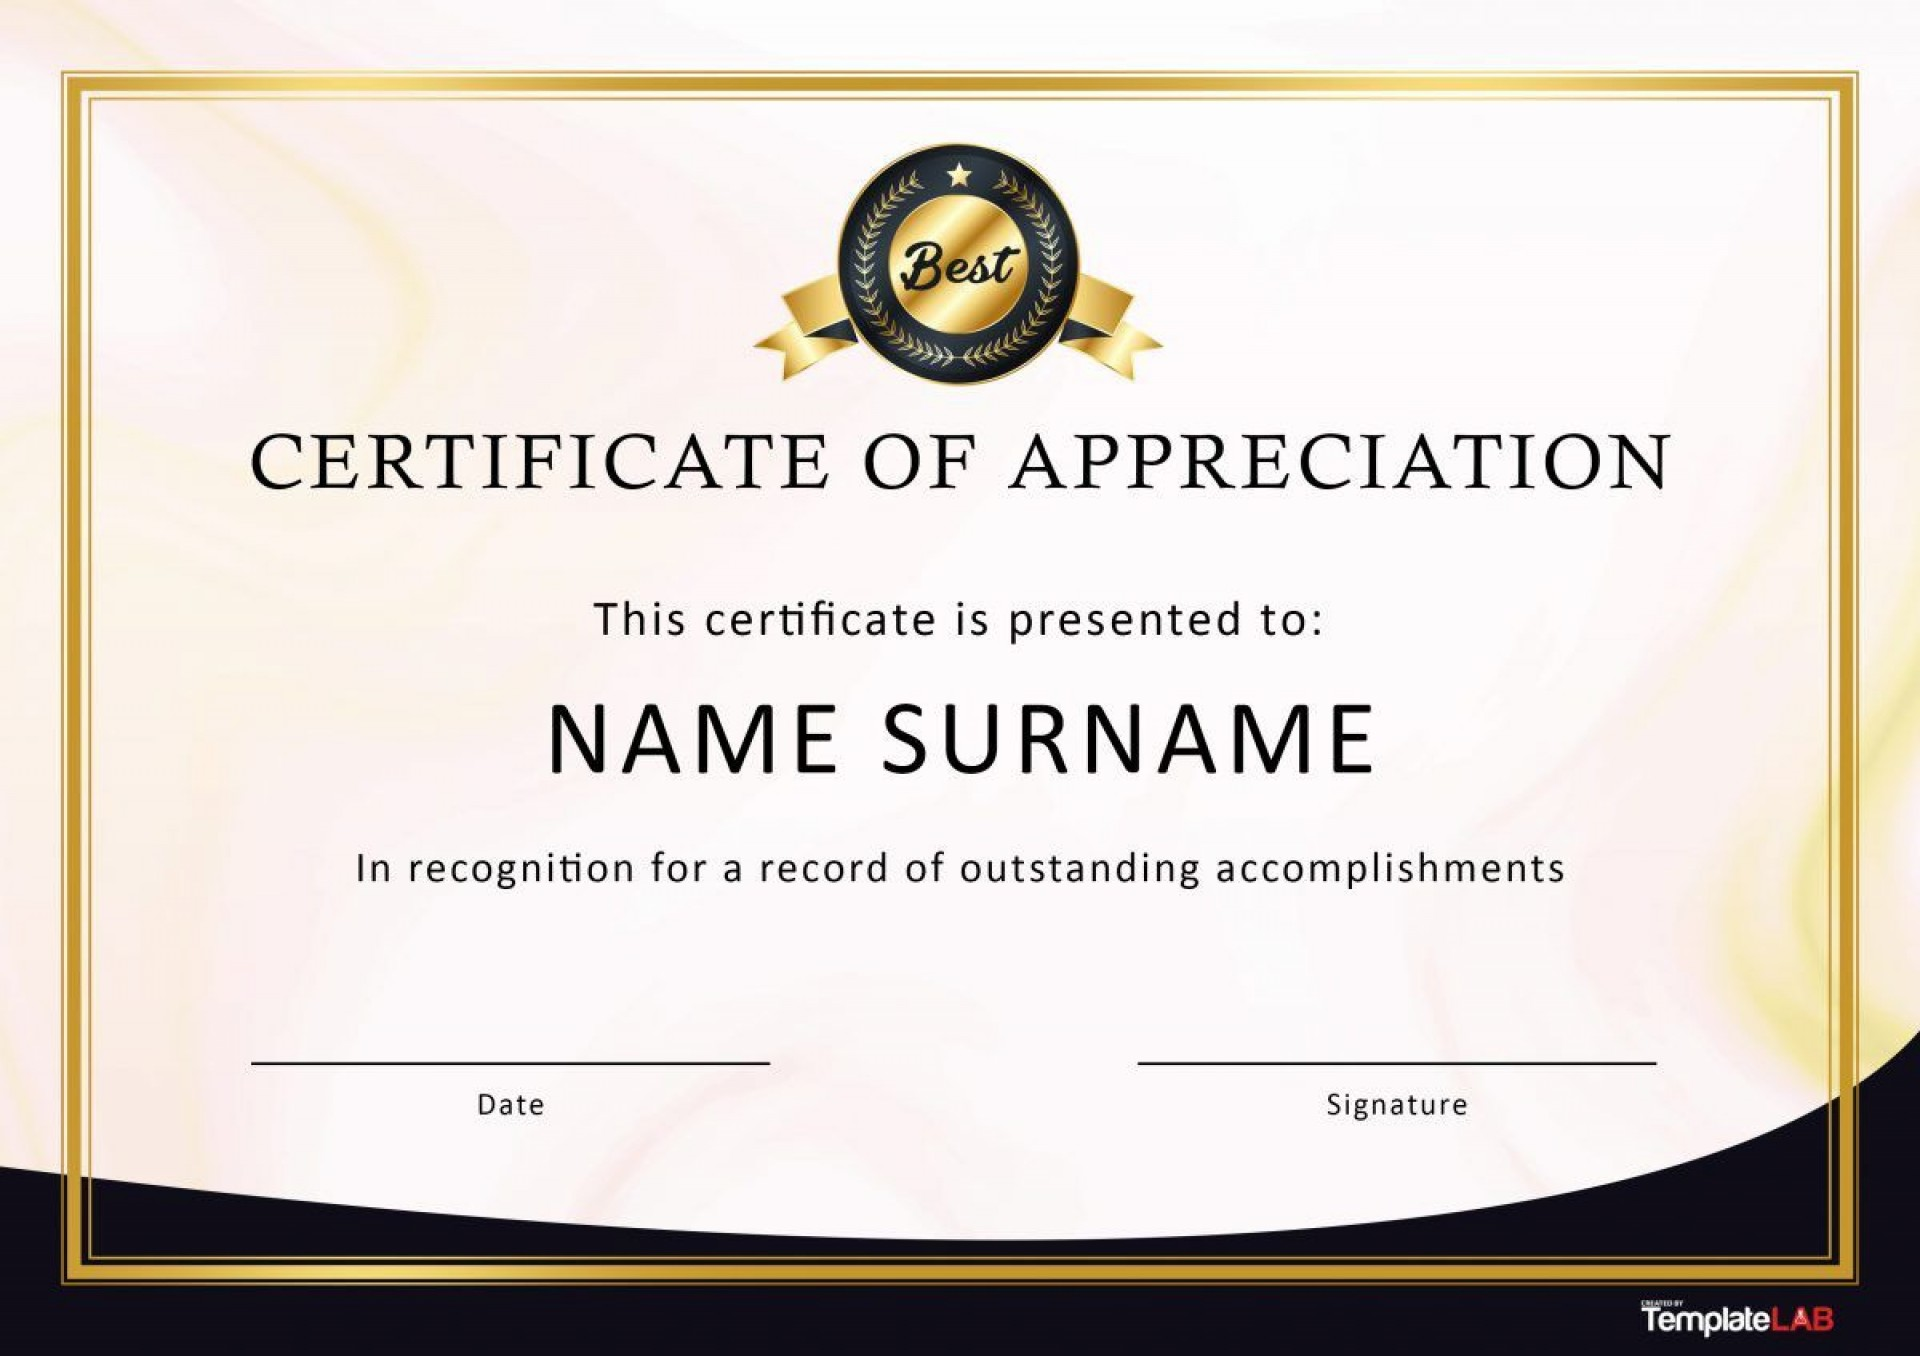 007 Archaicawful Certificate Of Recognition Sample Wording Image  Award1920